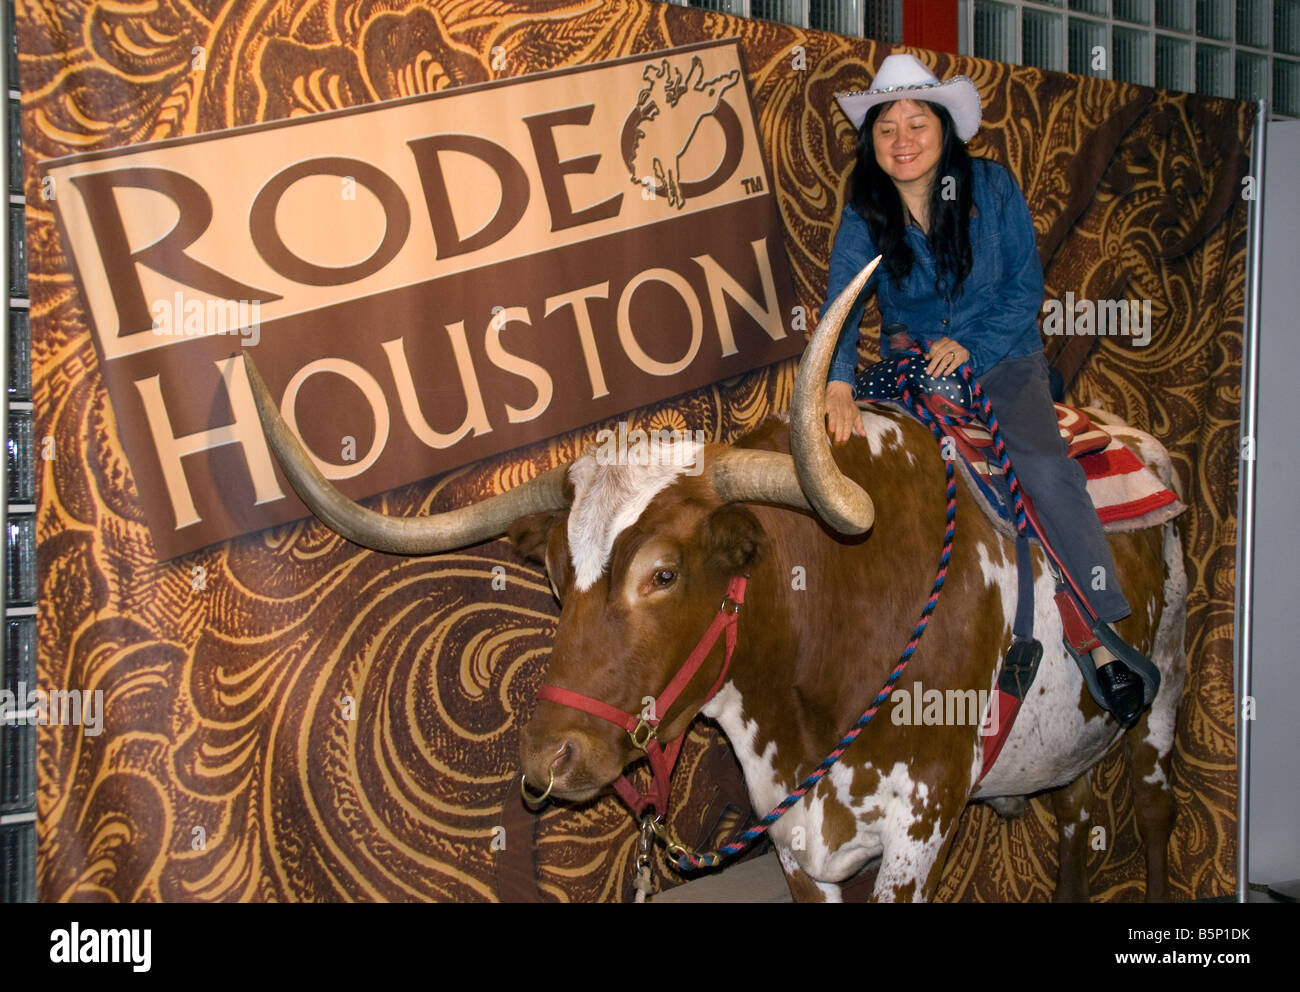 Houston Rodeo, tourist posing for photo on a Texas longhorn steer - Stock Image